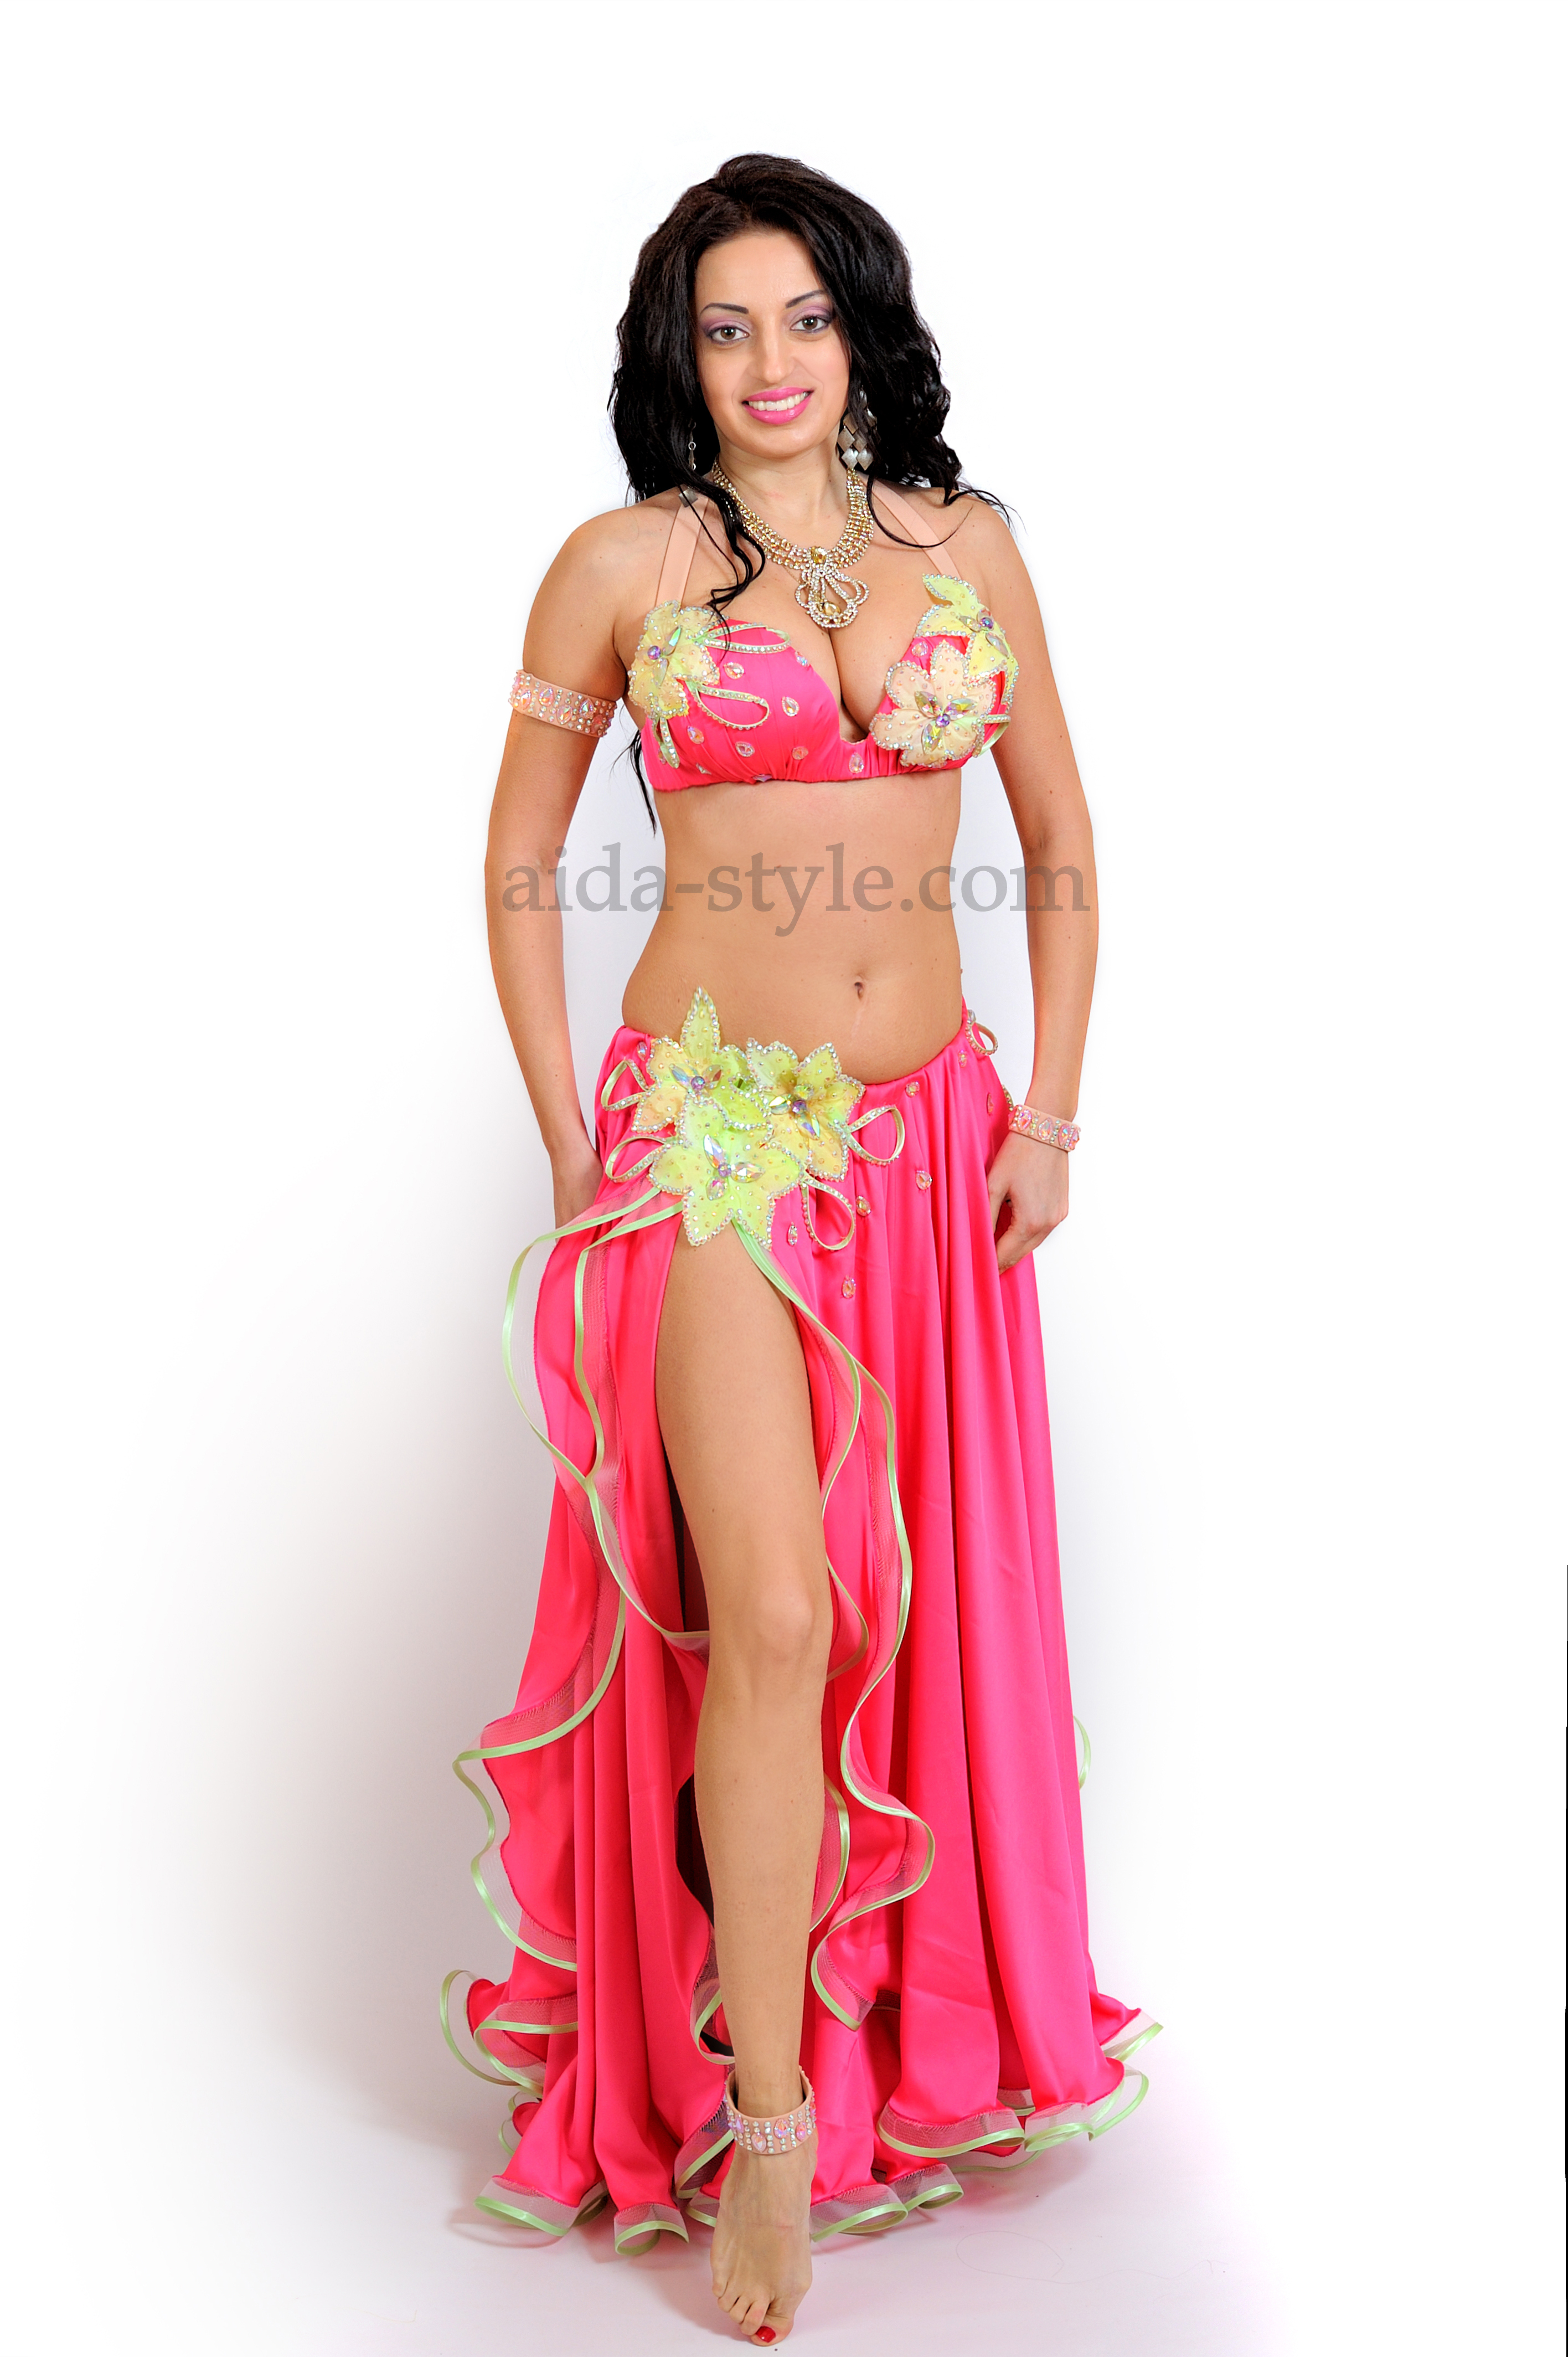 197790cbefd8 Professional belly dance dress in bright pink color. Skirt has two layers.  Its decorated